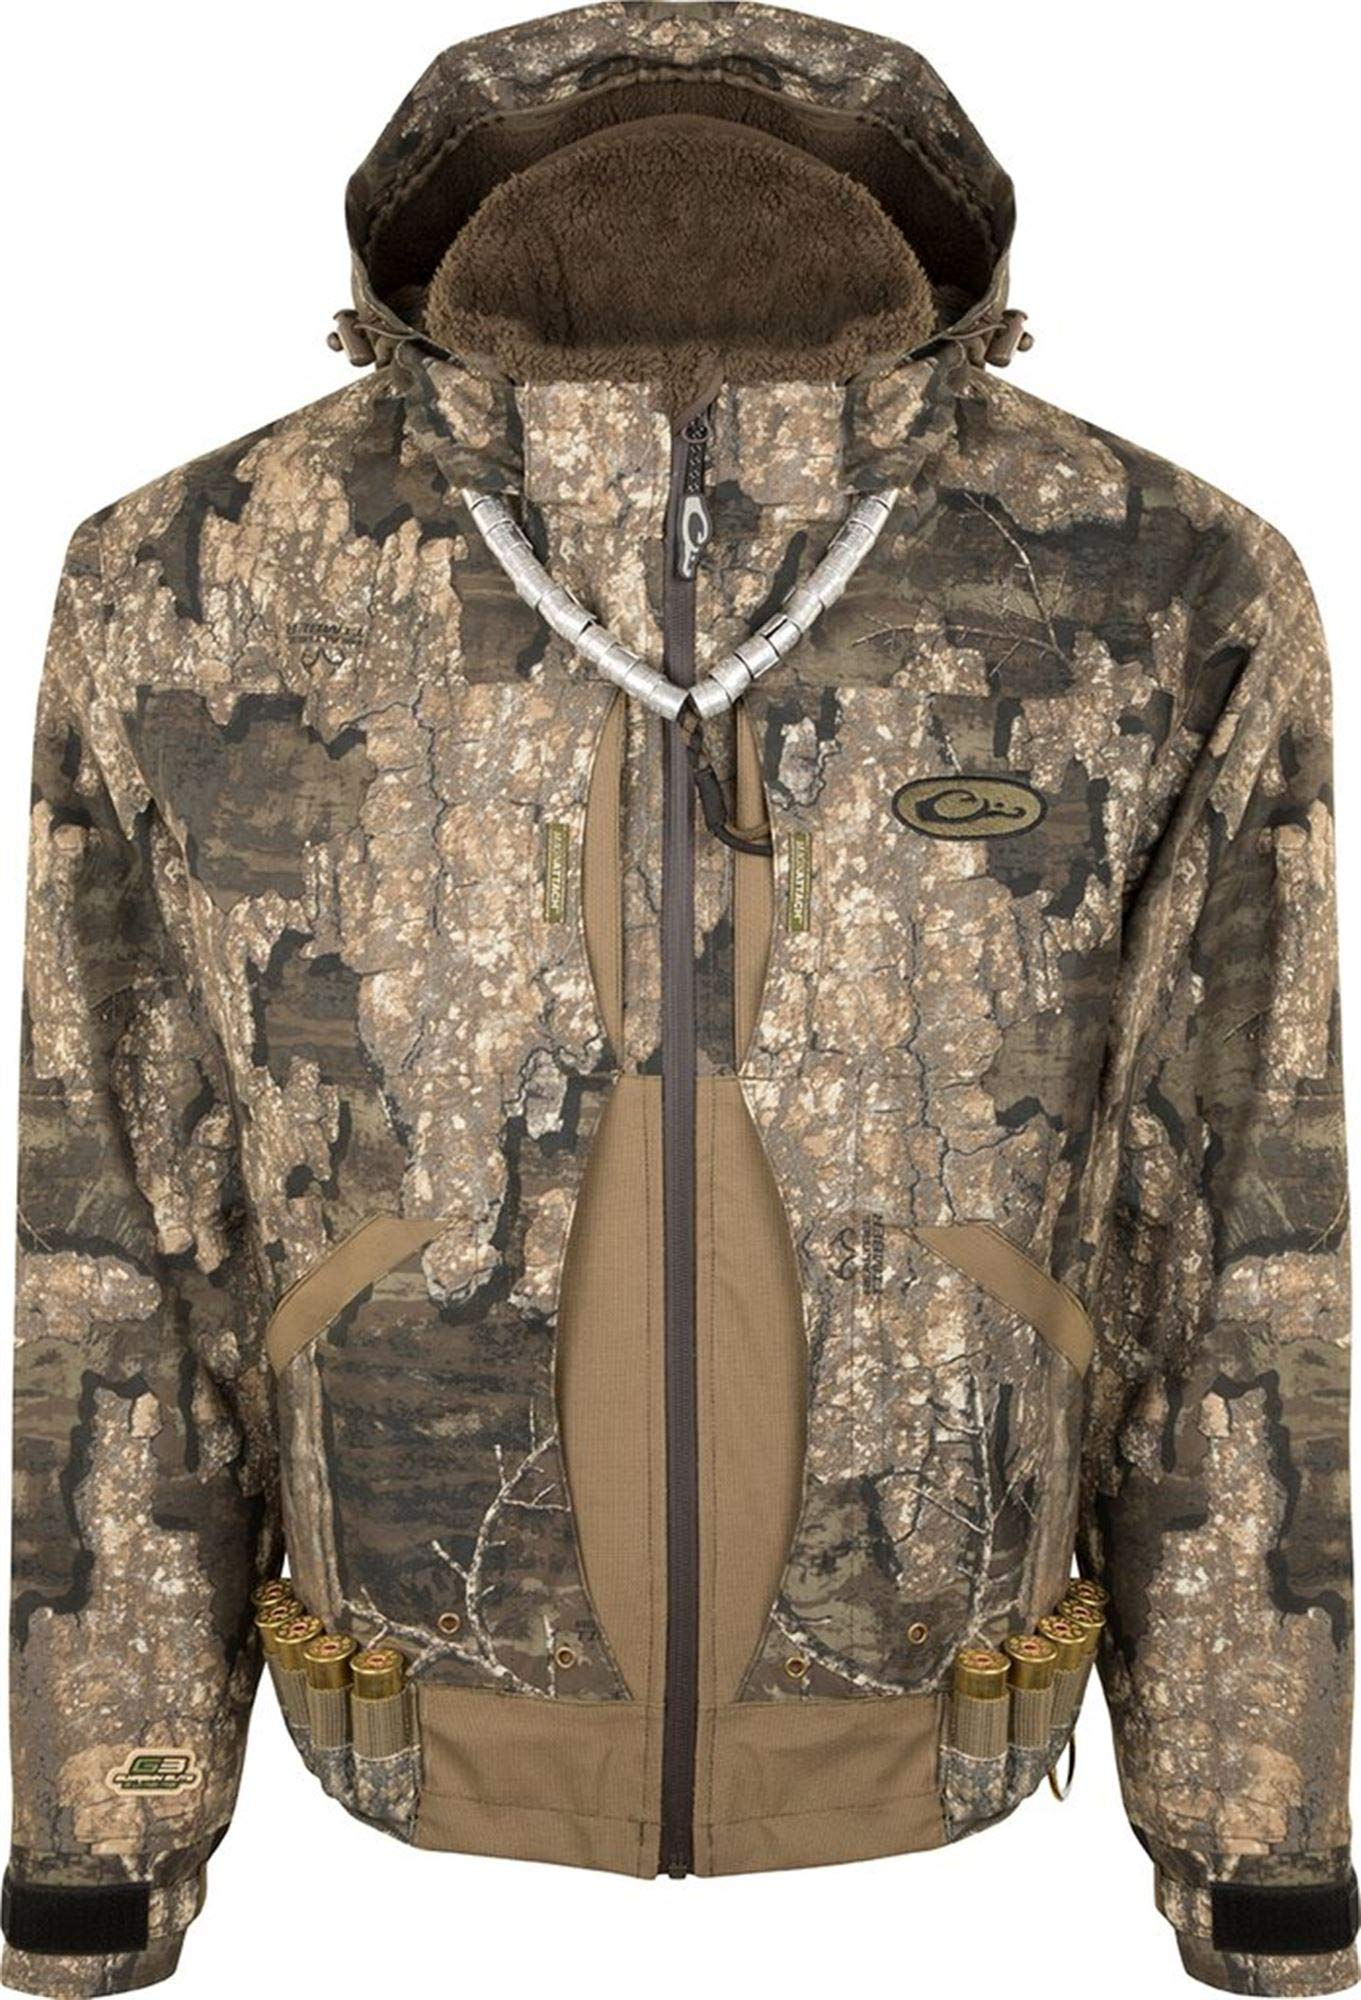 Drake Guardian Elite Flooded Timber - Insulated Realtree Timber Jacket (Medium, Realtree Timber)